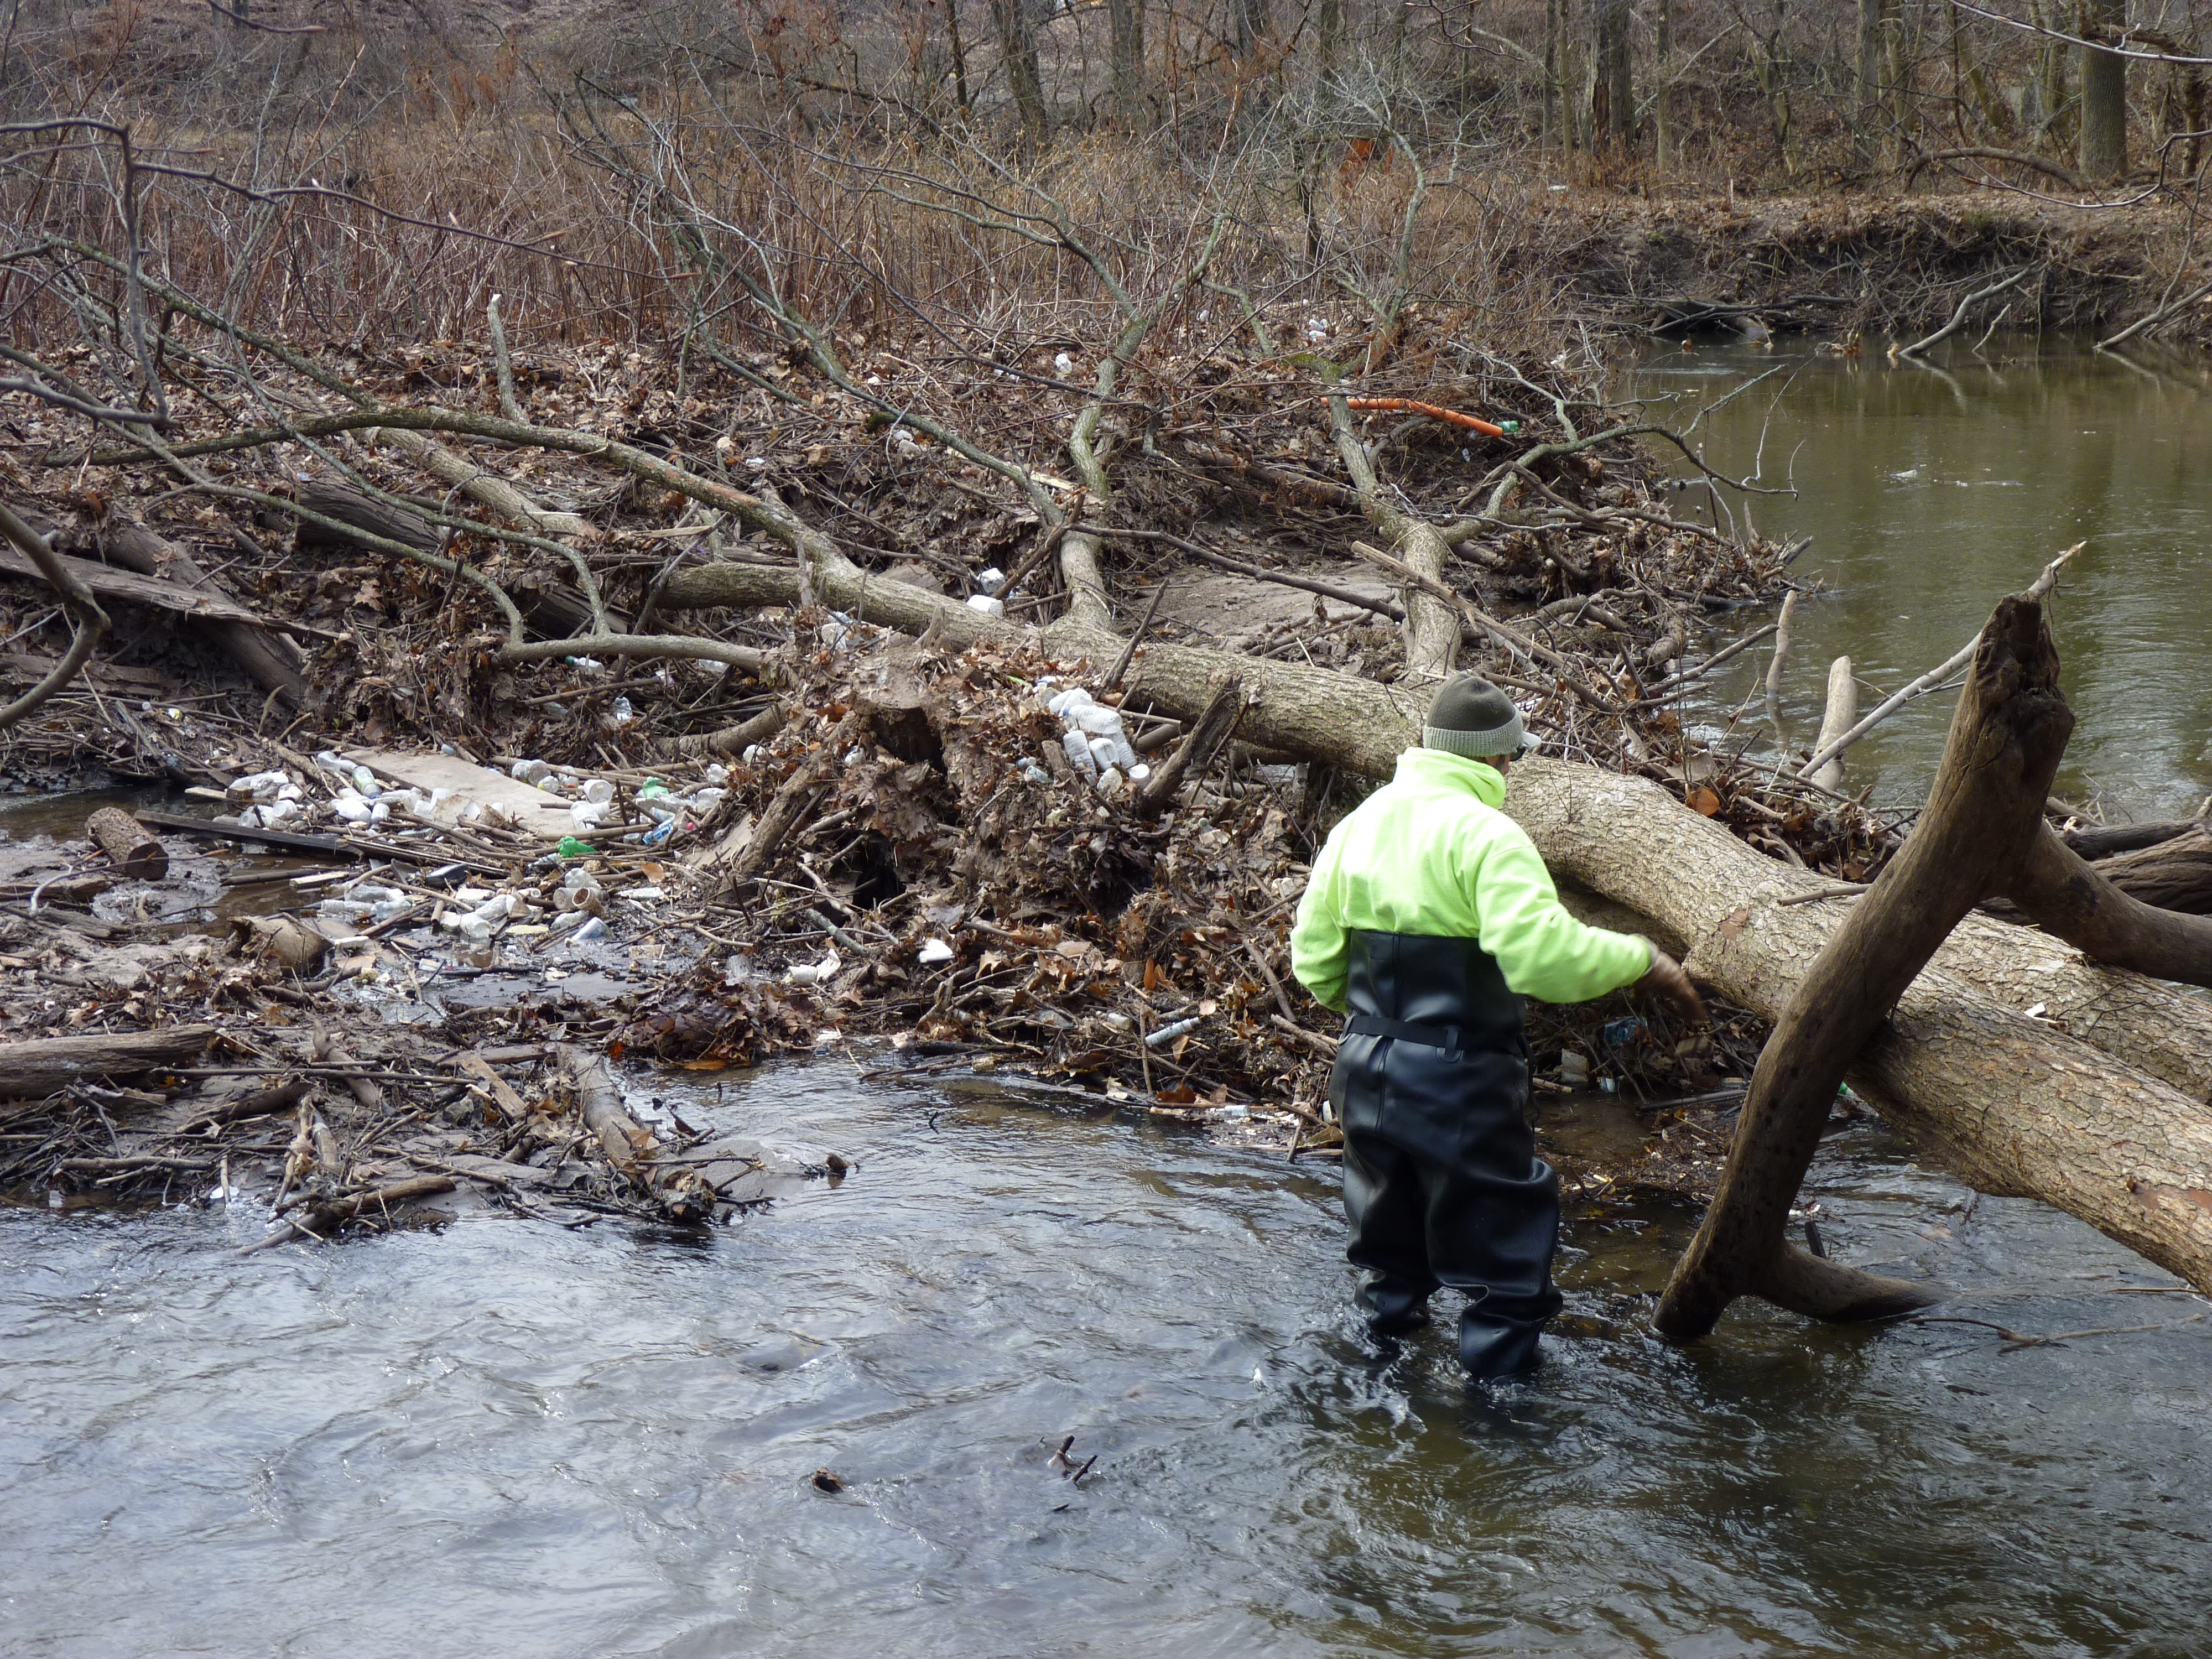 Volunteers braved the weather to clean up pollution in the Green Brook on Dec. 8, 2018.